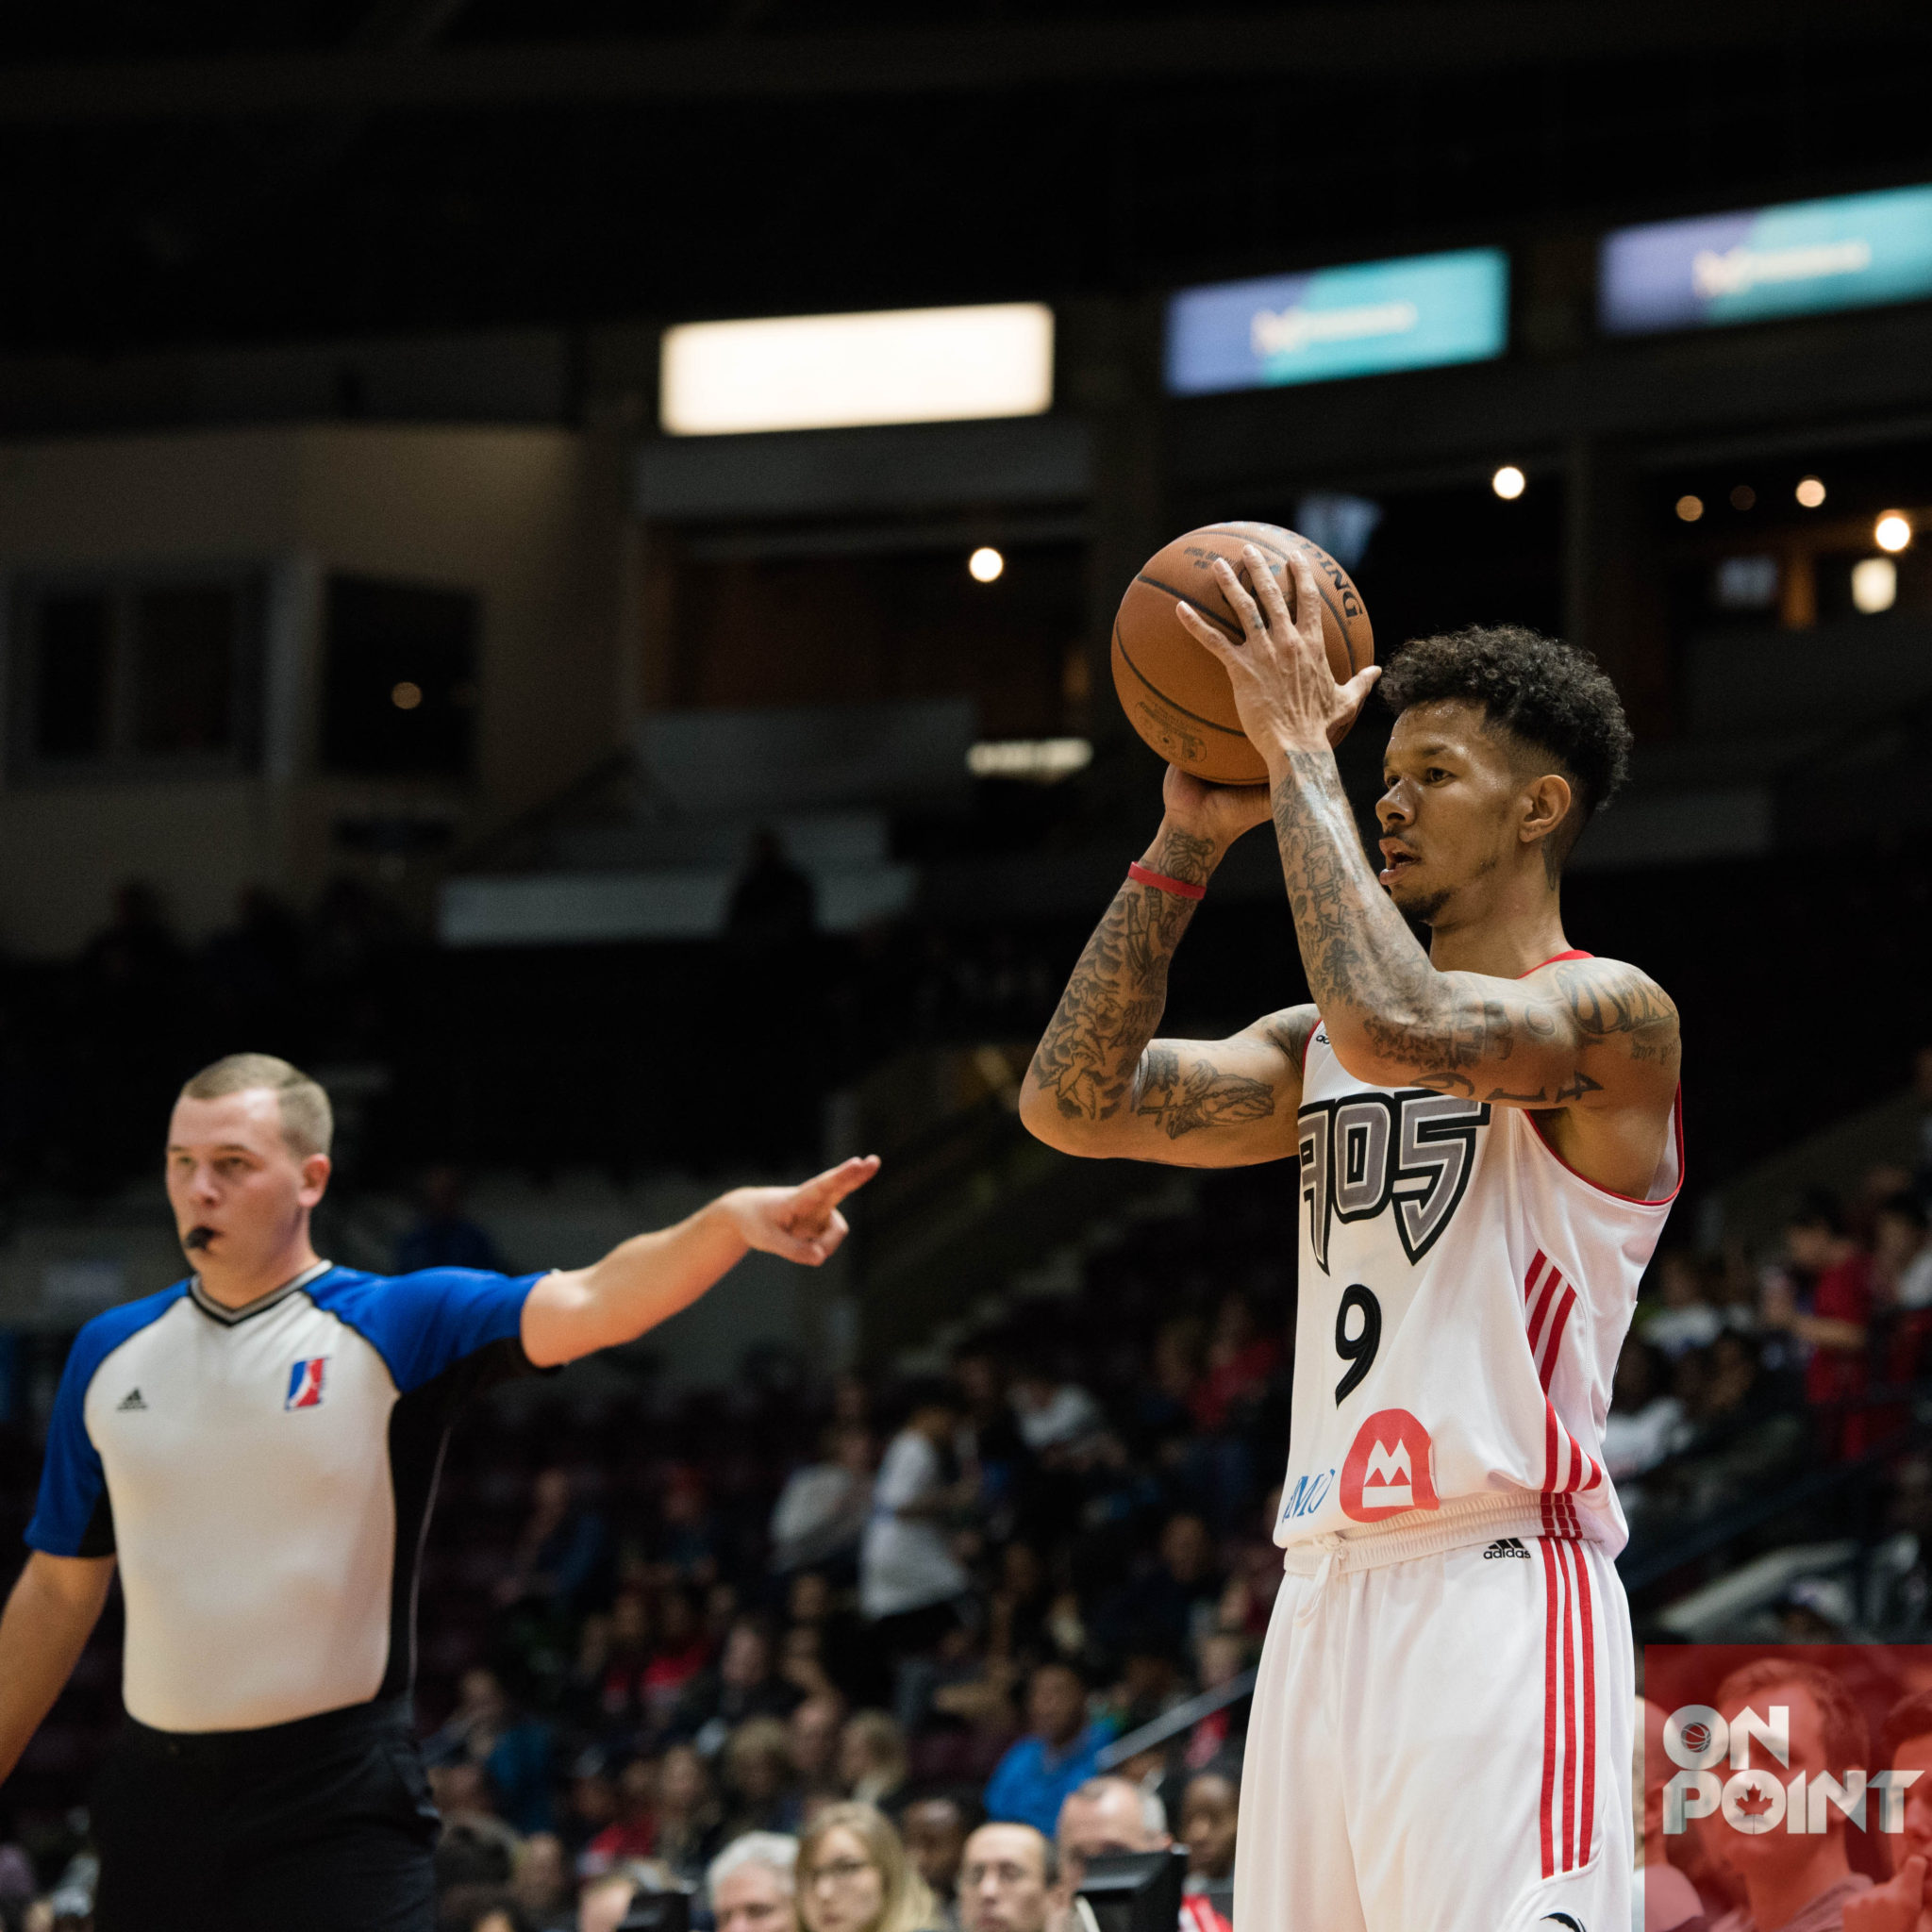 Raptors 905 Losing Woes Continue As They Fall to Canton